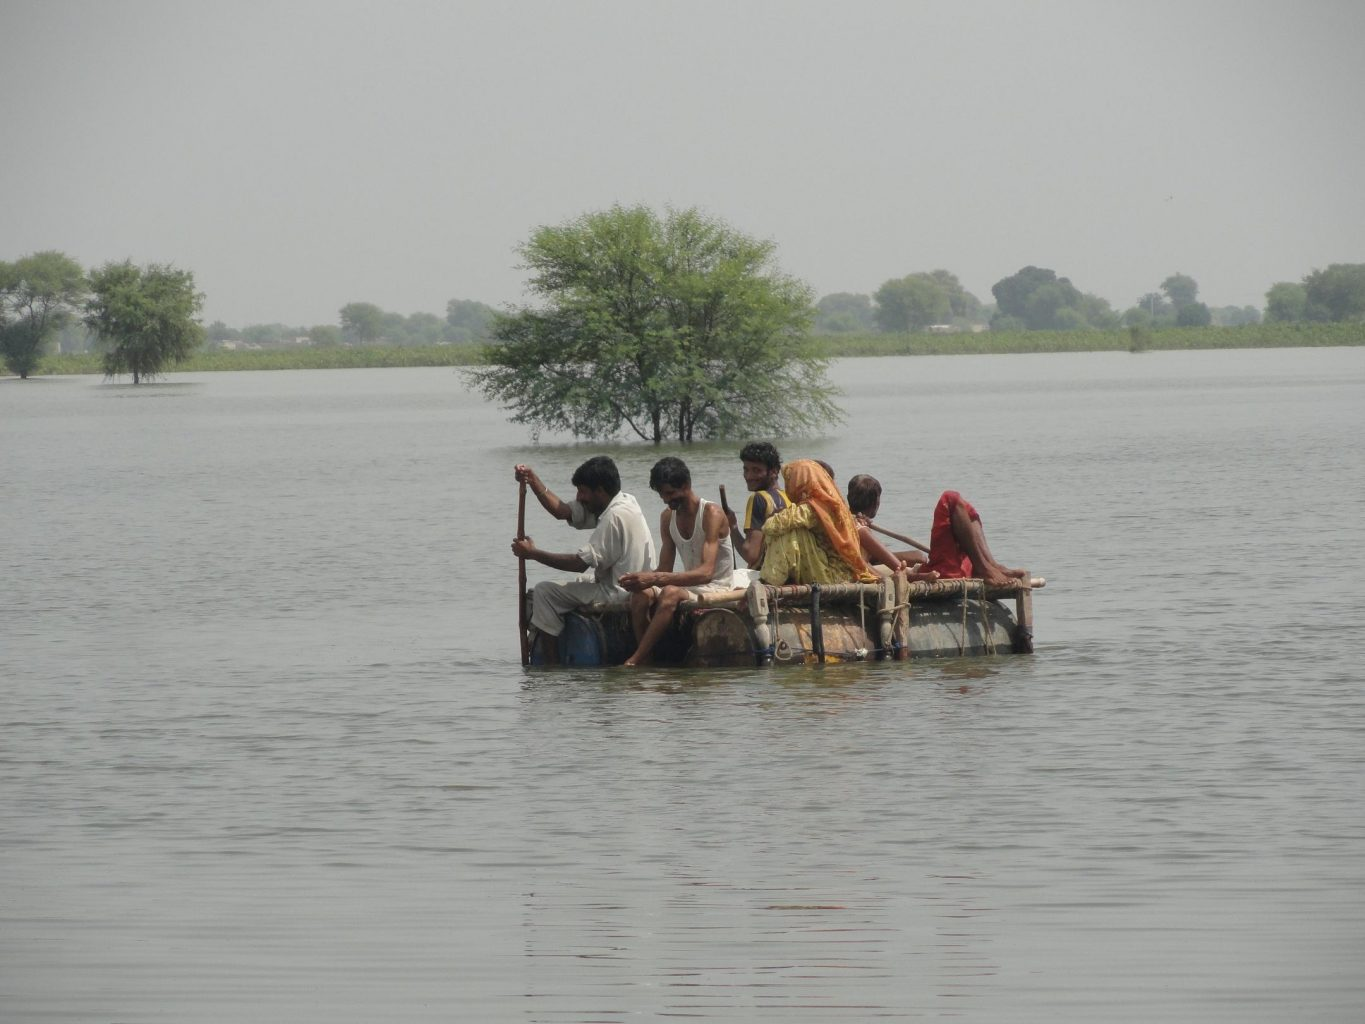 Keeping a promise: Caritas helps Pakistan's latest flood victims